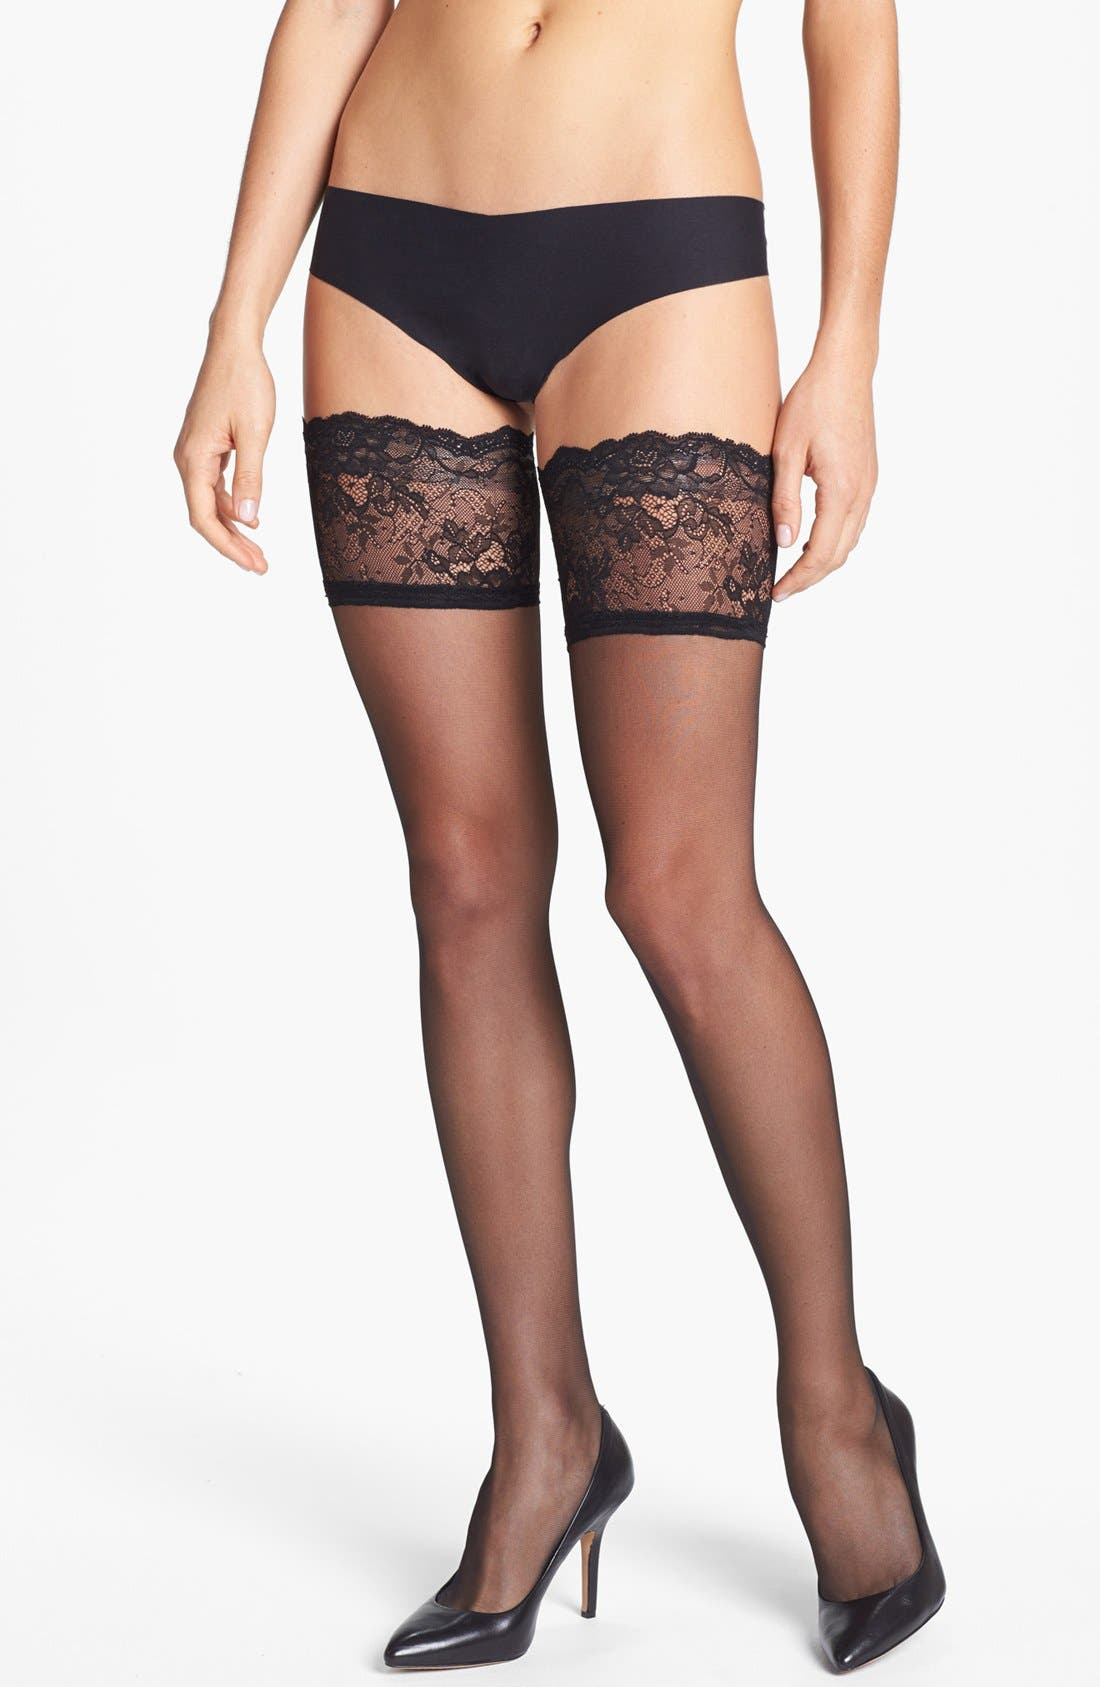 Donna Karan Lace Top Stay-Up Stockings,                             Main thumbnail 1, color,                             BLACK